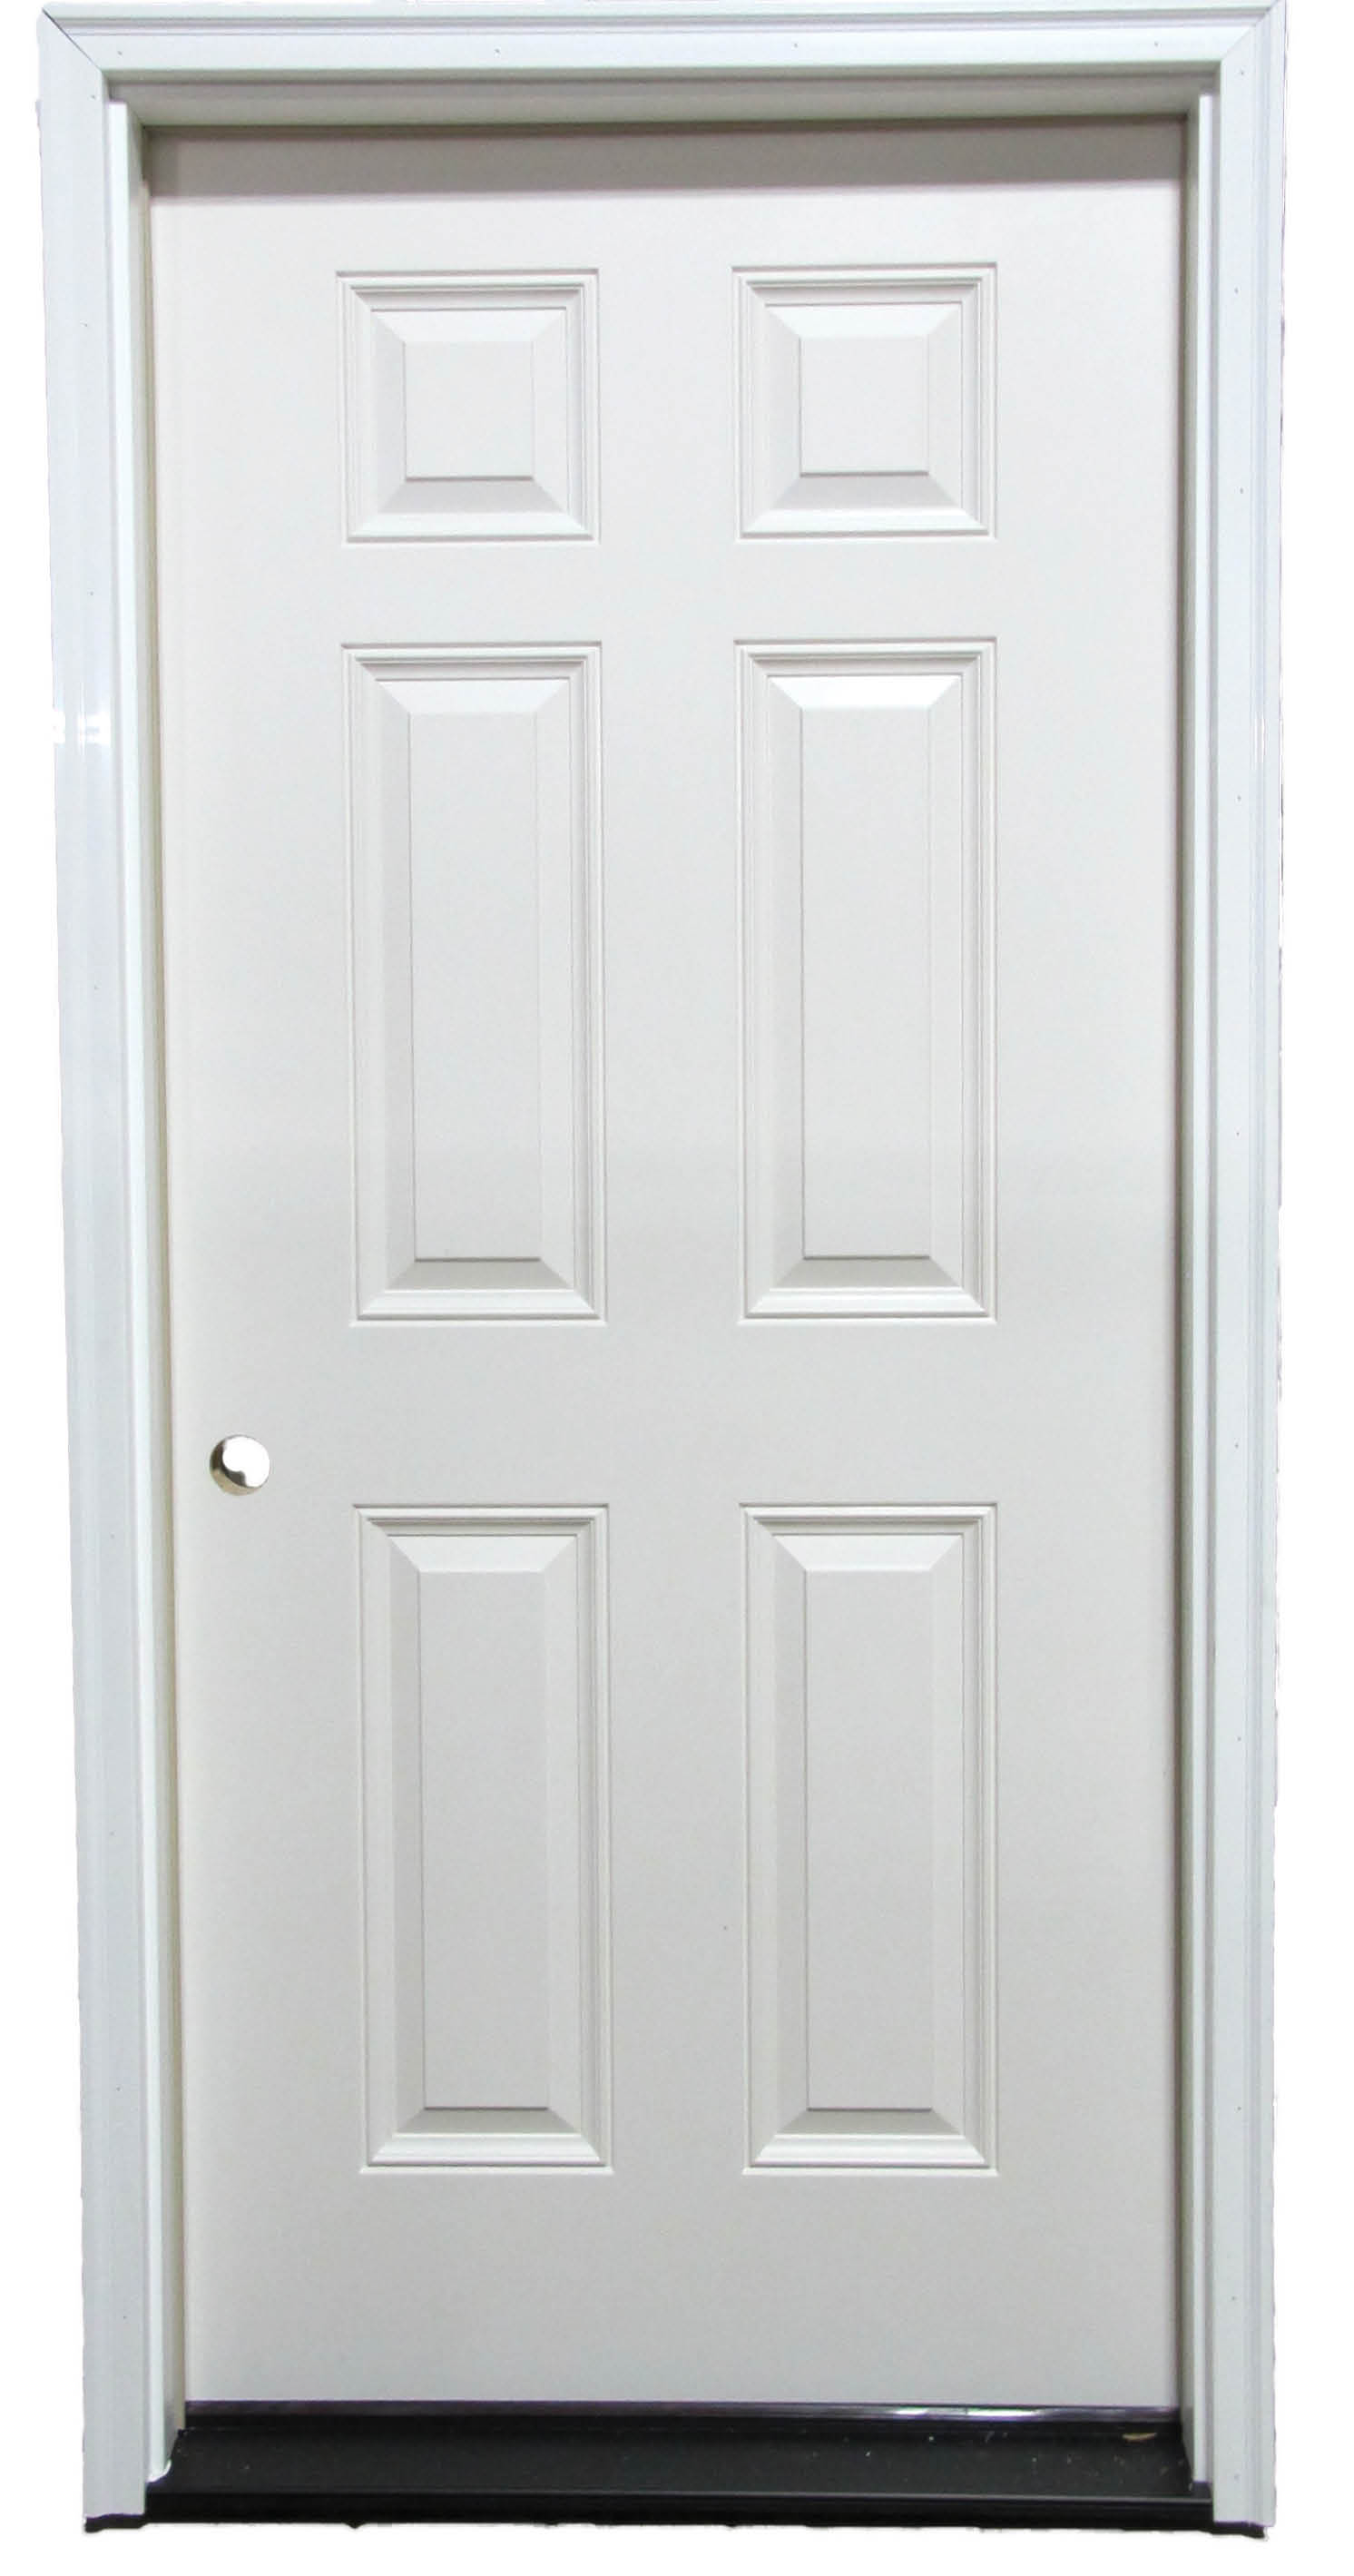 Fiberglass entry doors a b martin building supplies for Fiberglass entrance doors